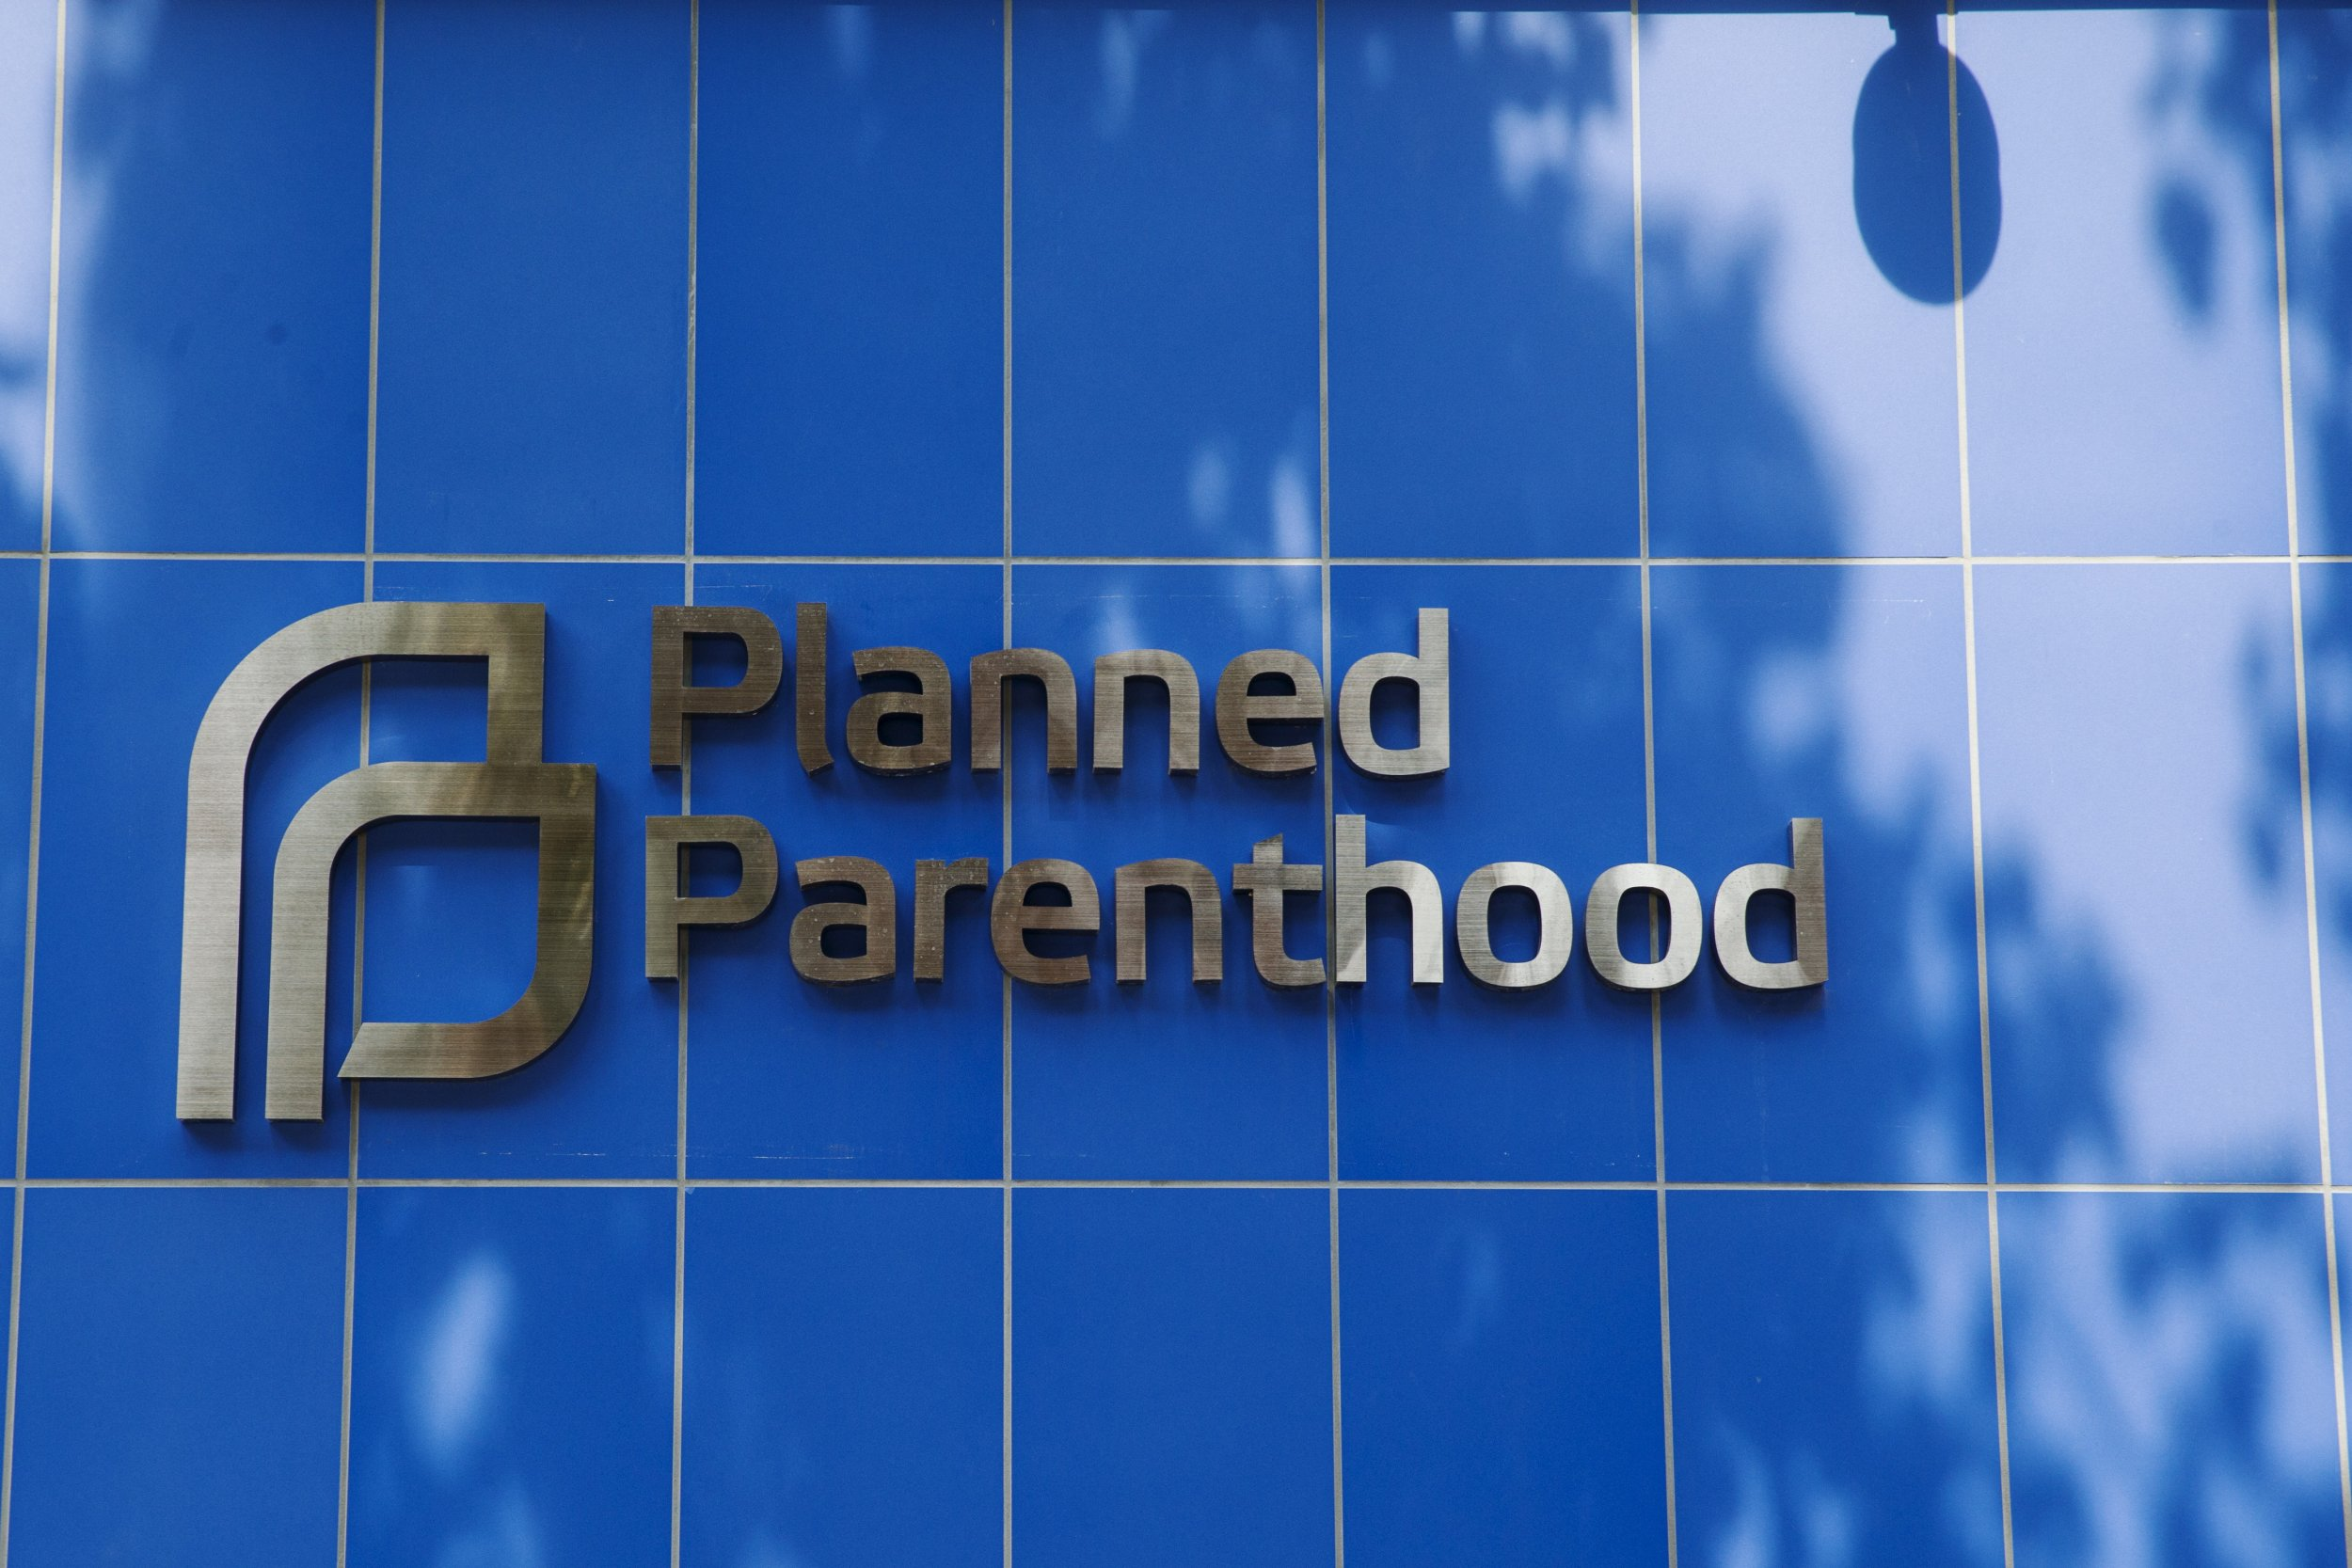 12_03_Planned_Parenthood_01